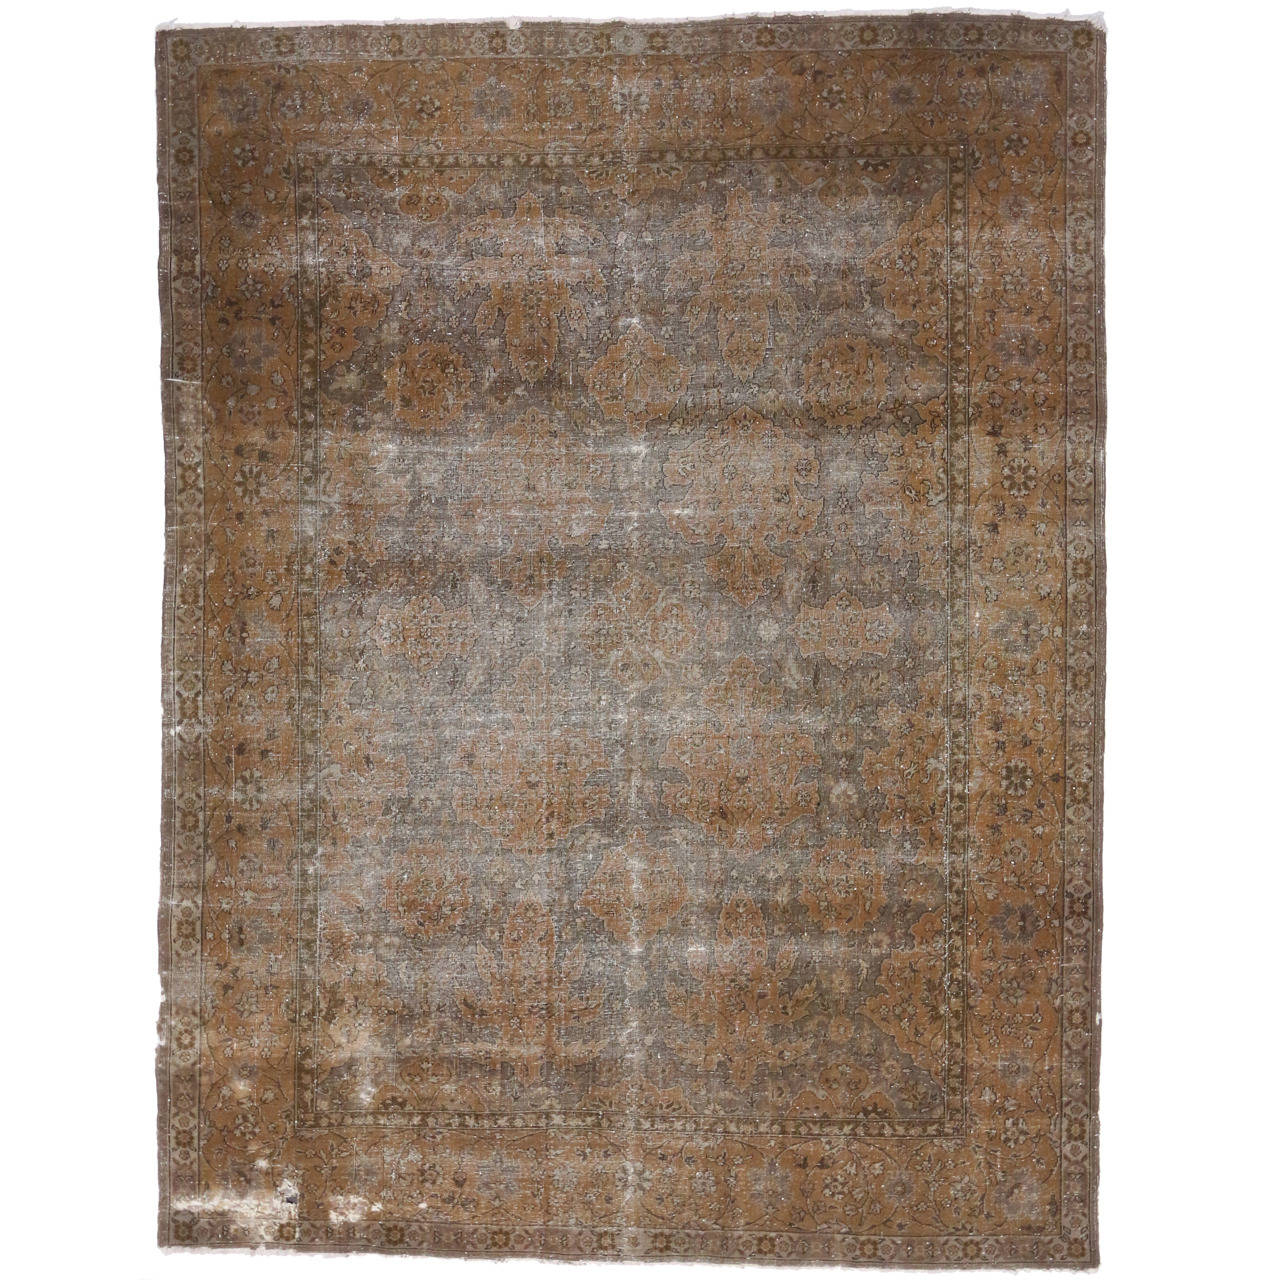 Distressed antique turkish sparta area rug with modern for Vintage style area rugs